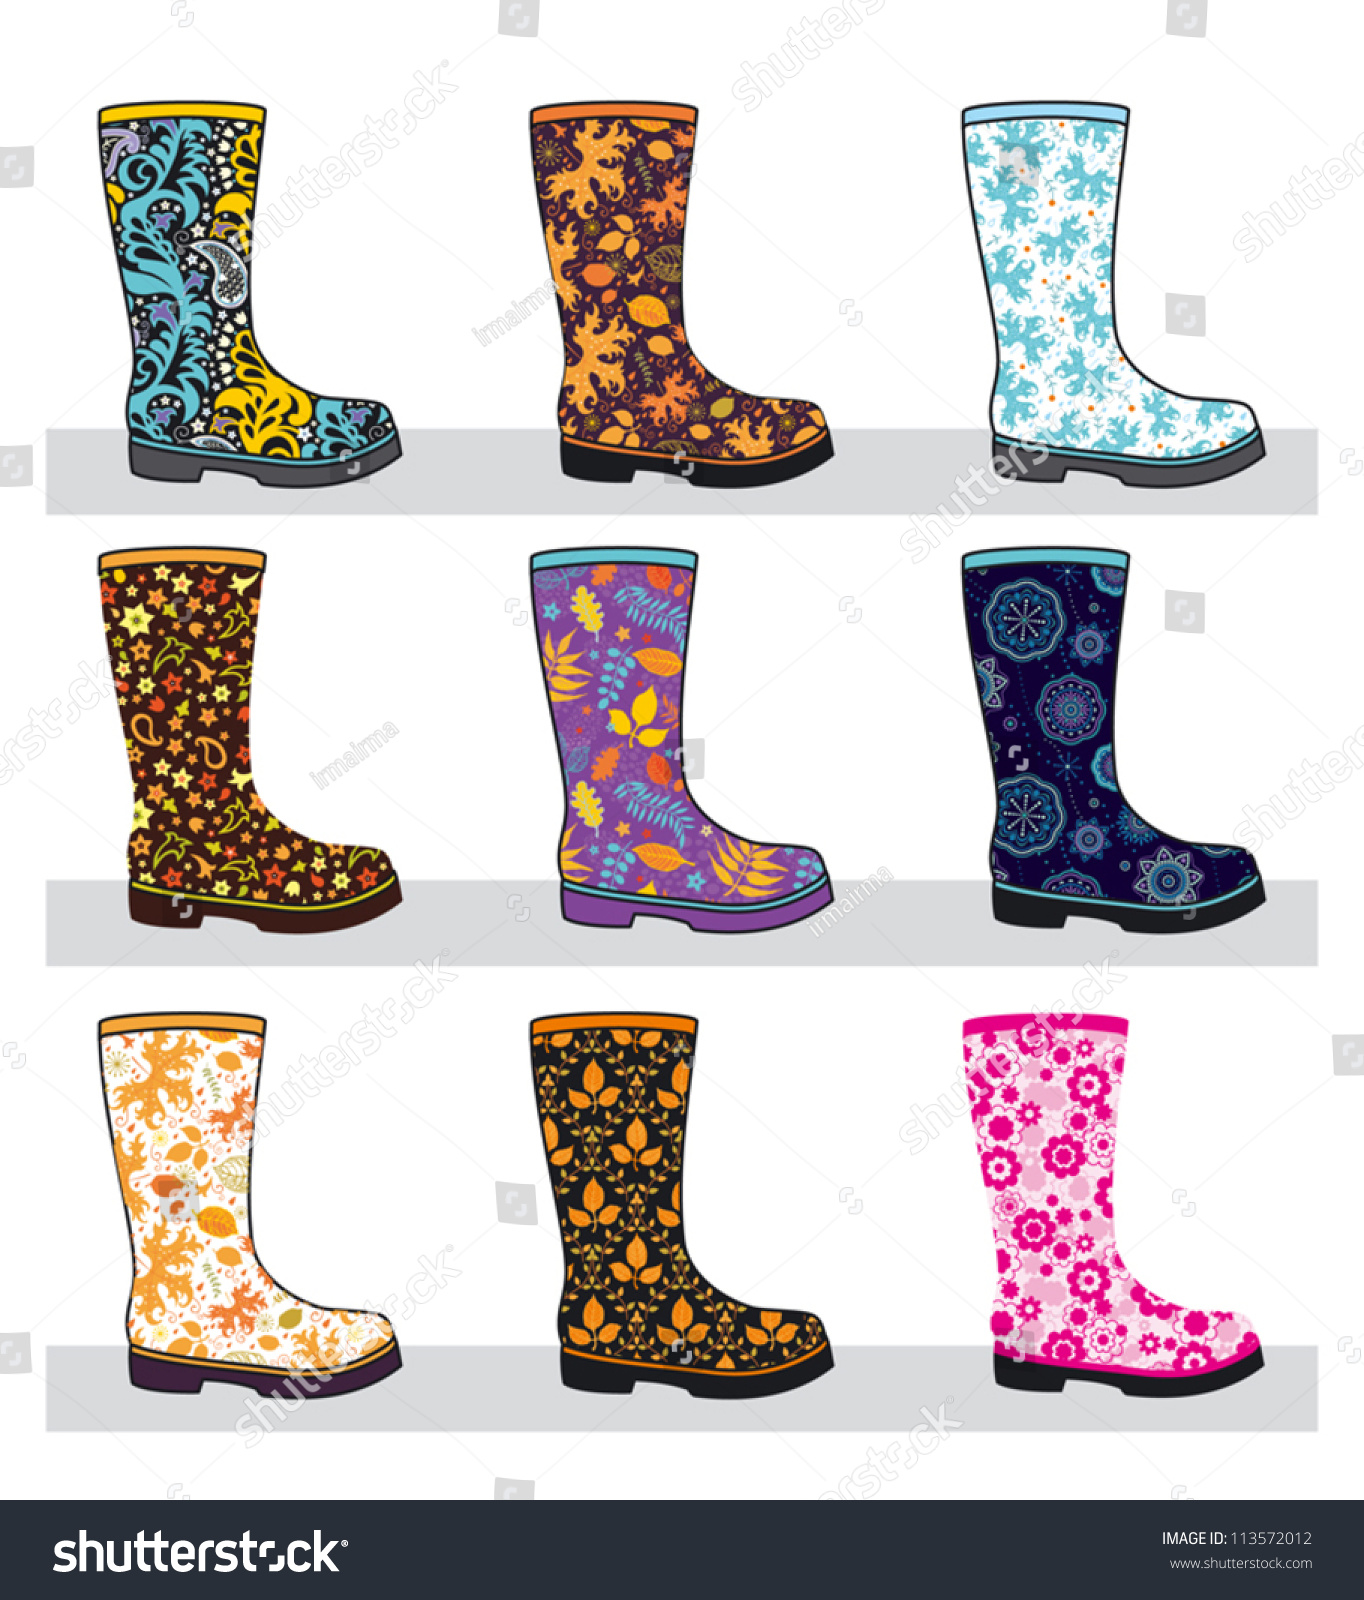 Boots fashion pic boots clip art - Set Of Fashionable Colorful Rubber Boots With Patterns Vector Illustration 113572012 Shutterstock